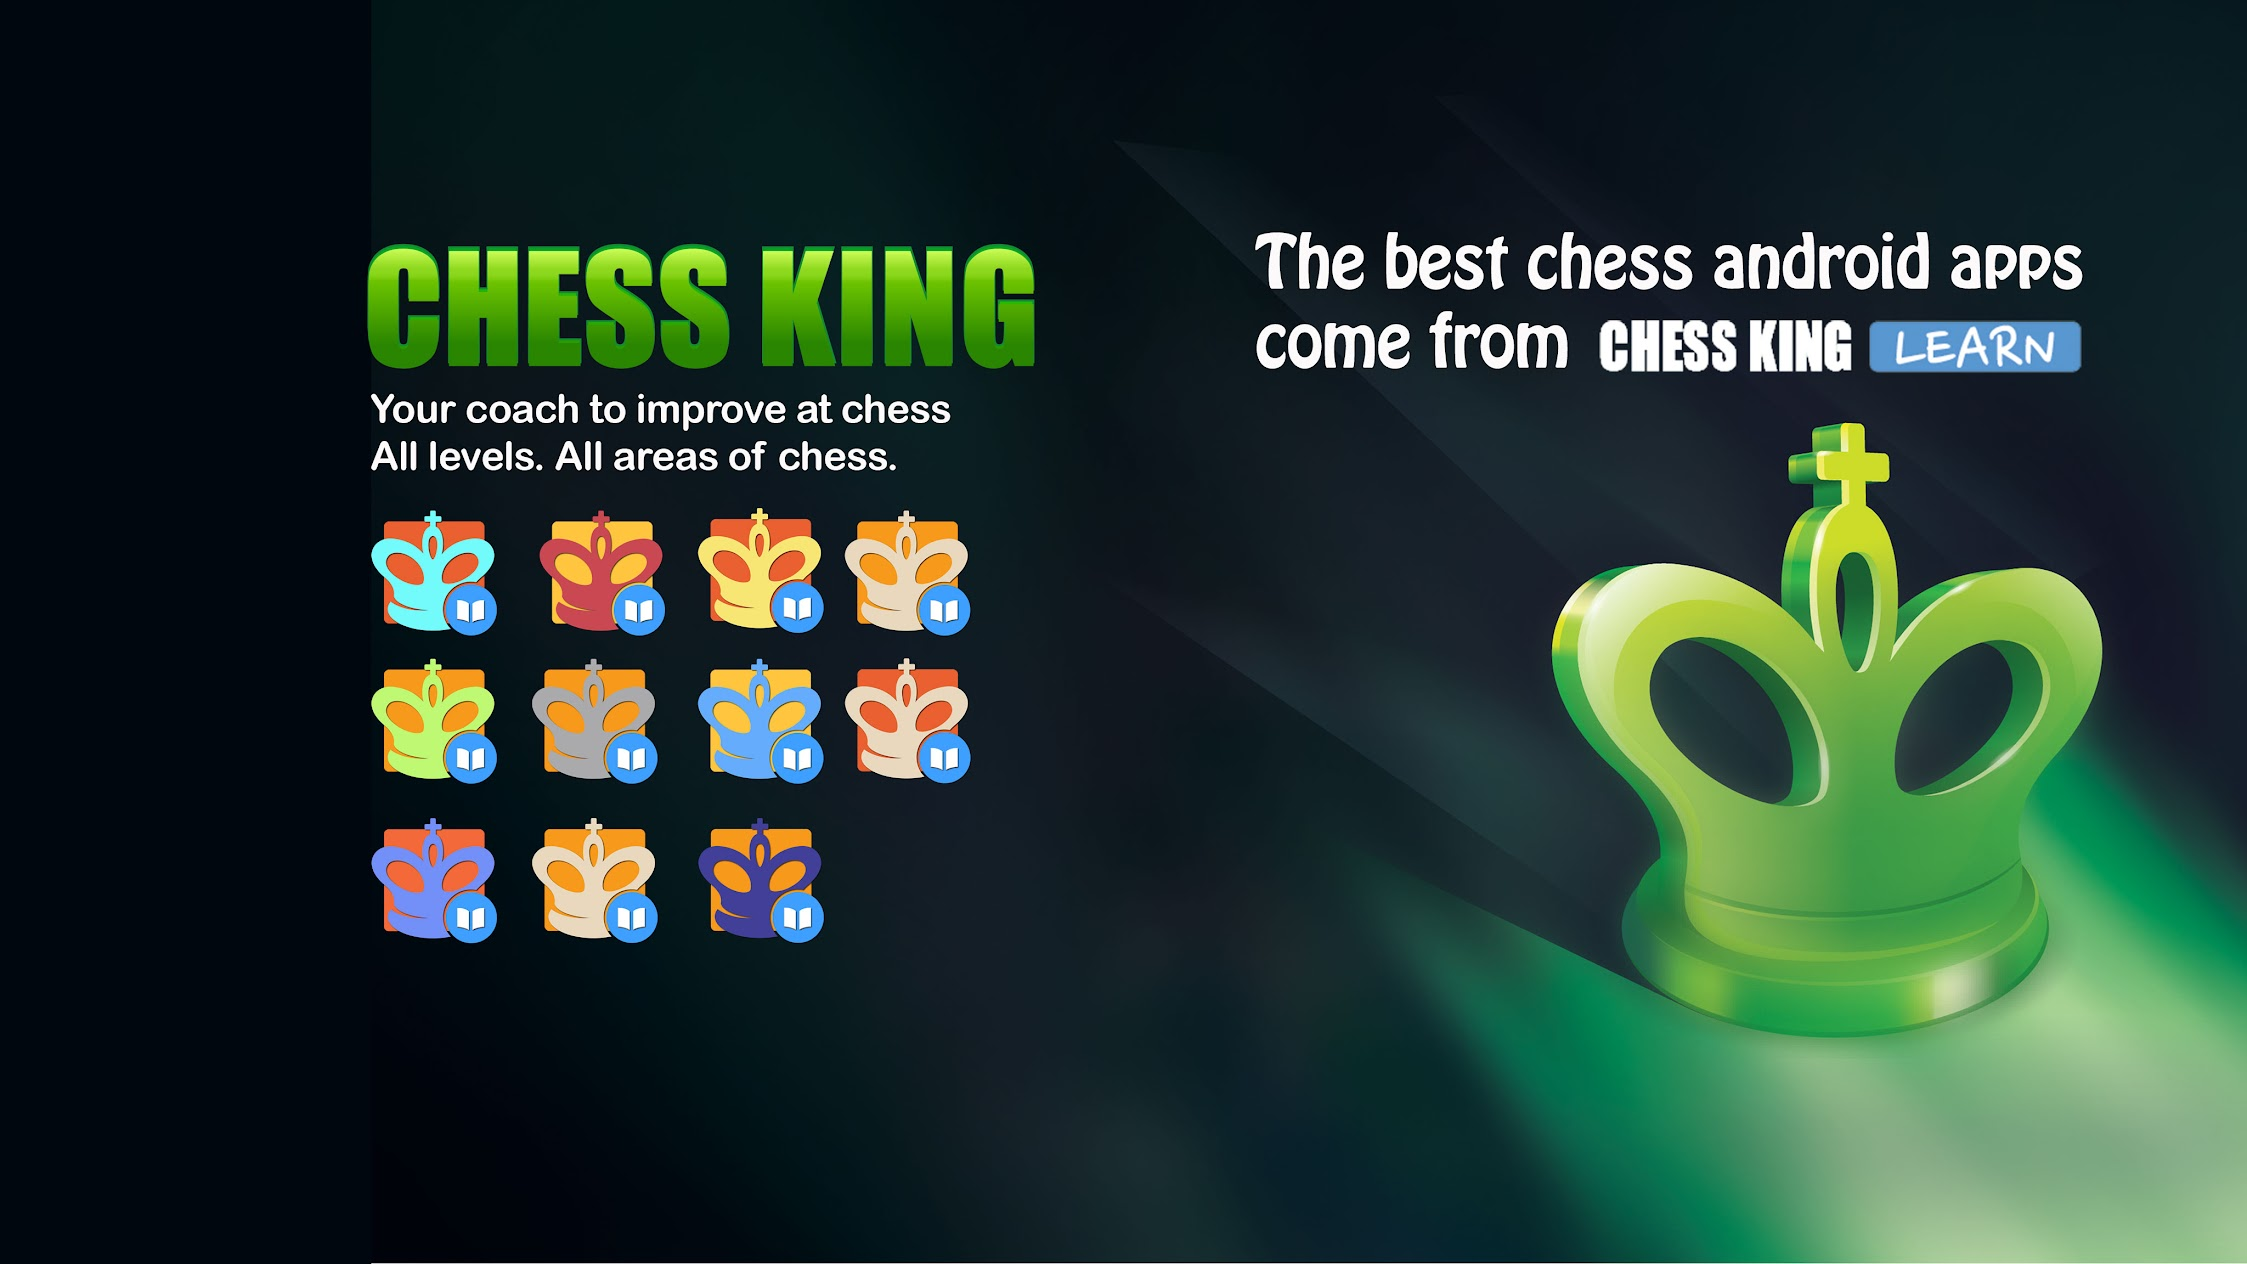 Android Apps by Chess King on Google Play